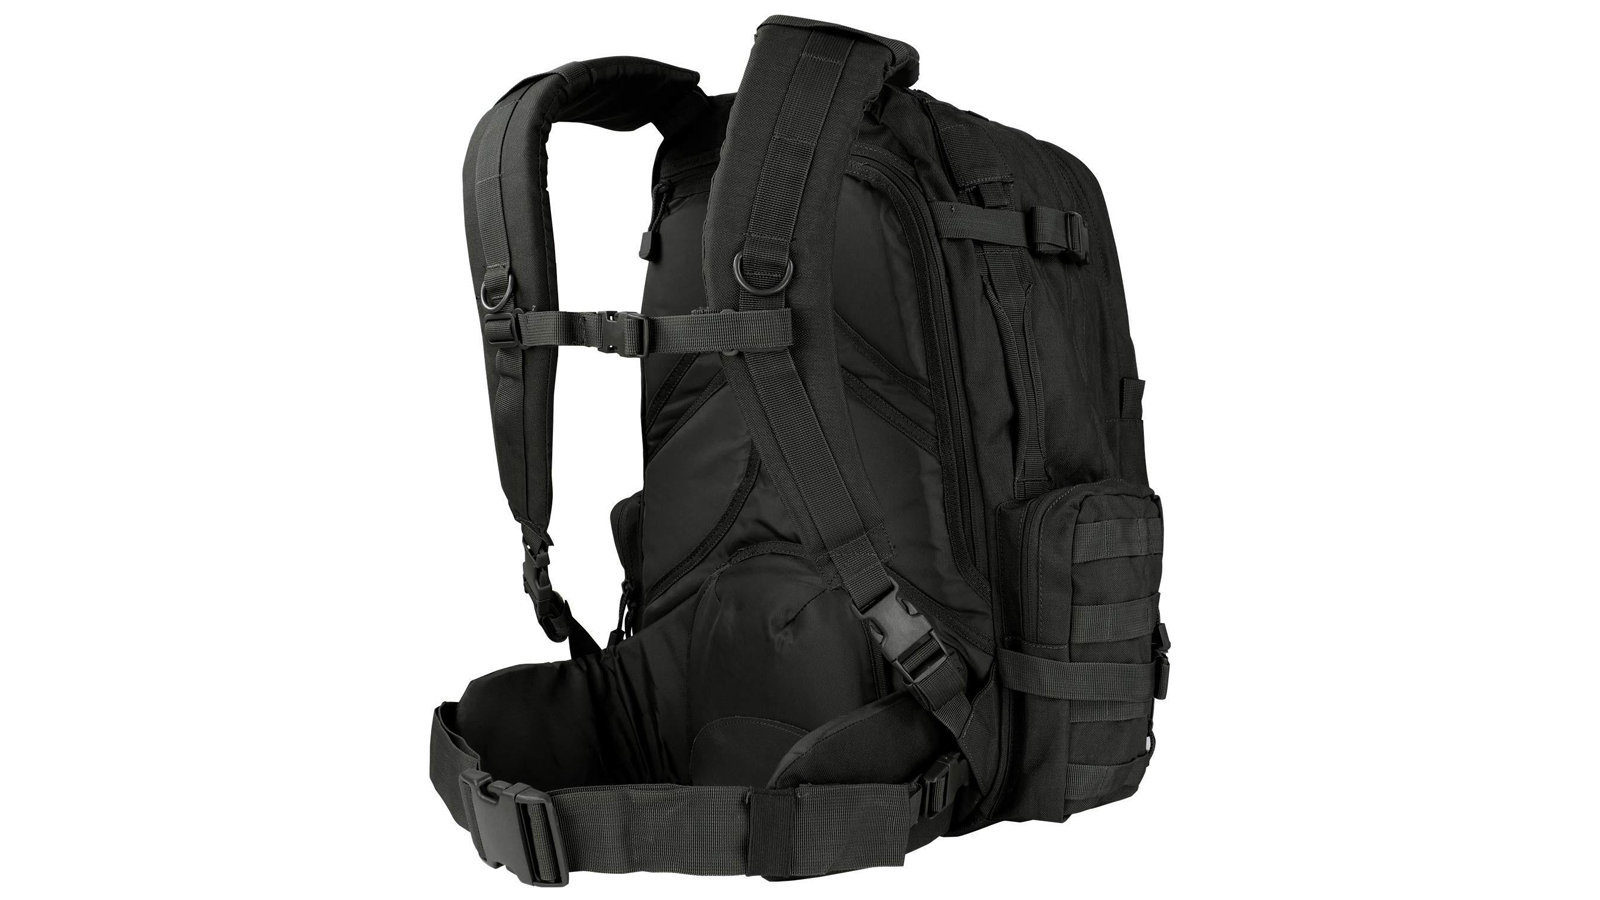 Condor 3 day tactical survival backpack